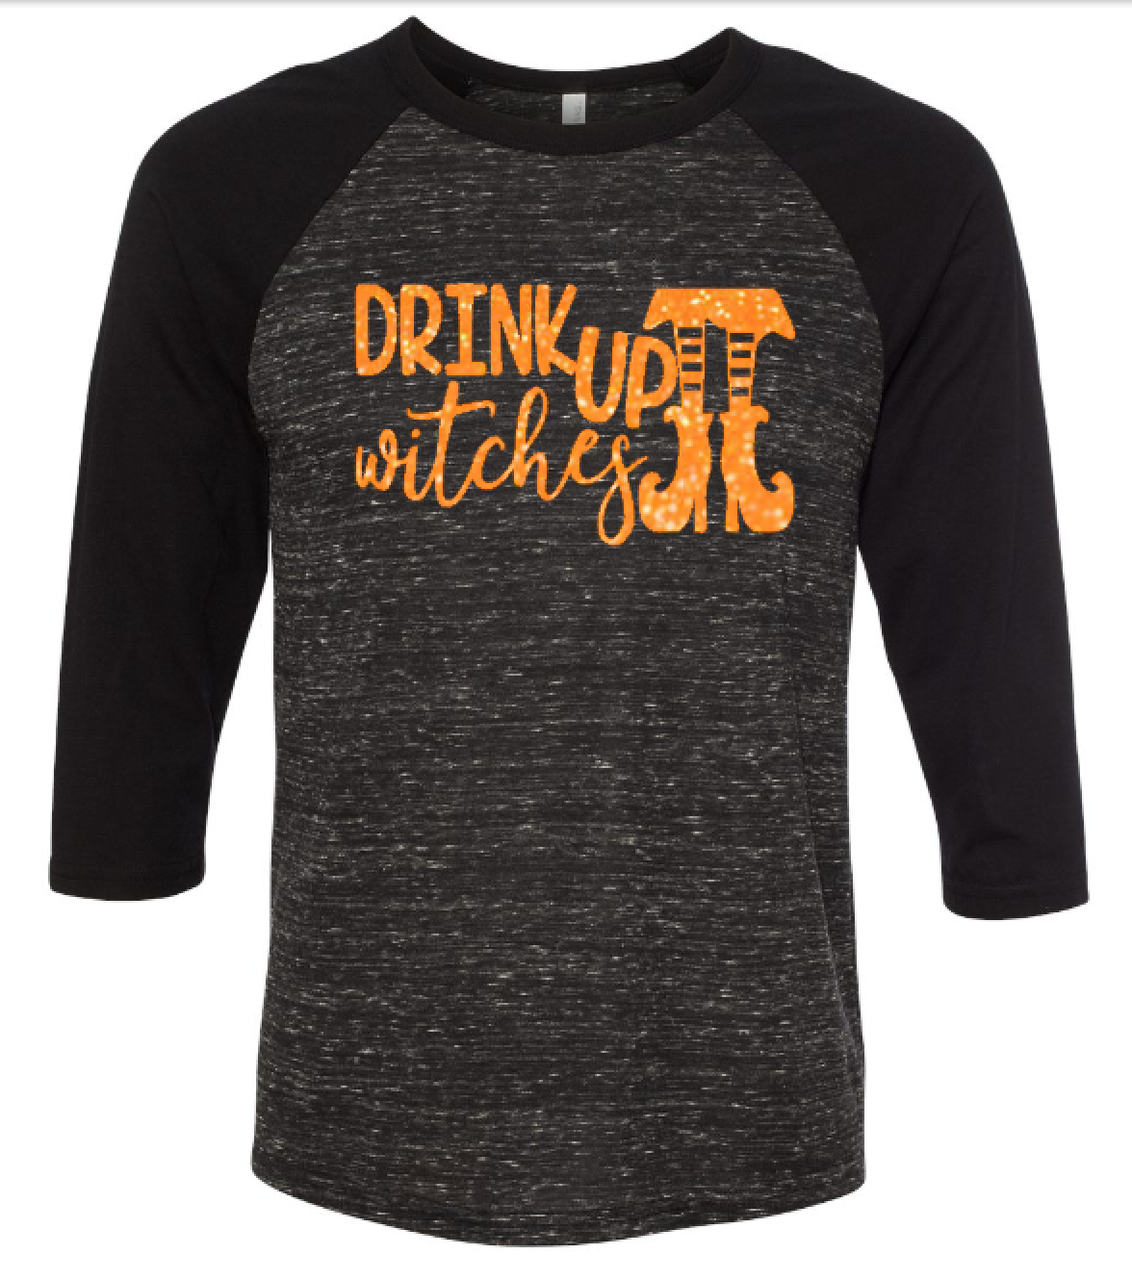 65eb8353e Drink Up Witches - Halloween Shirt - Funny Halloween Shirt - Womens  Clothing - Wine Shirt - Make it Personal by MM